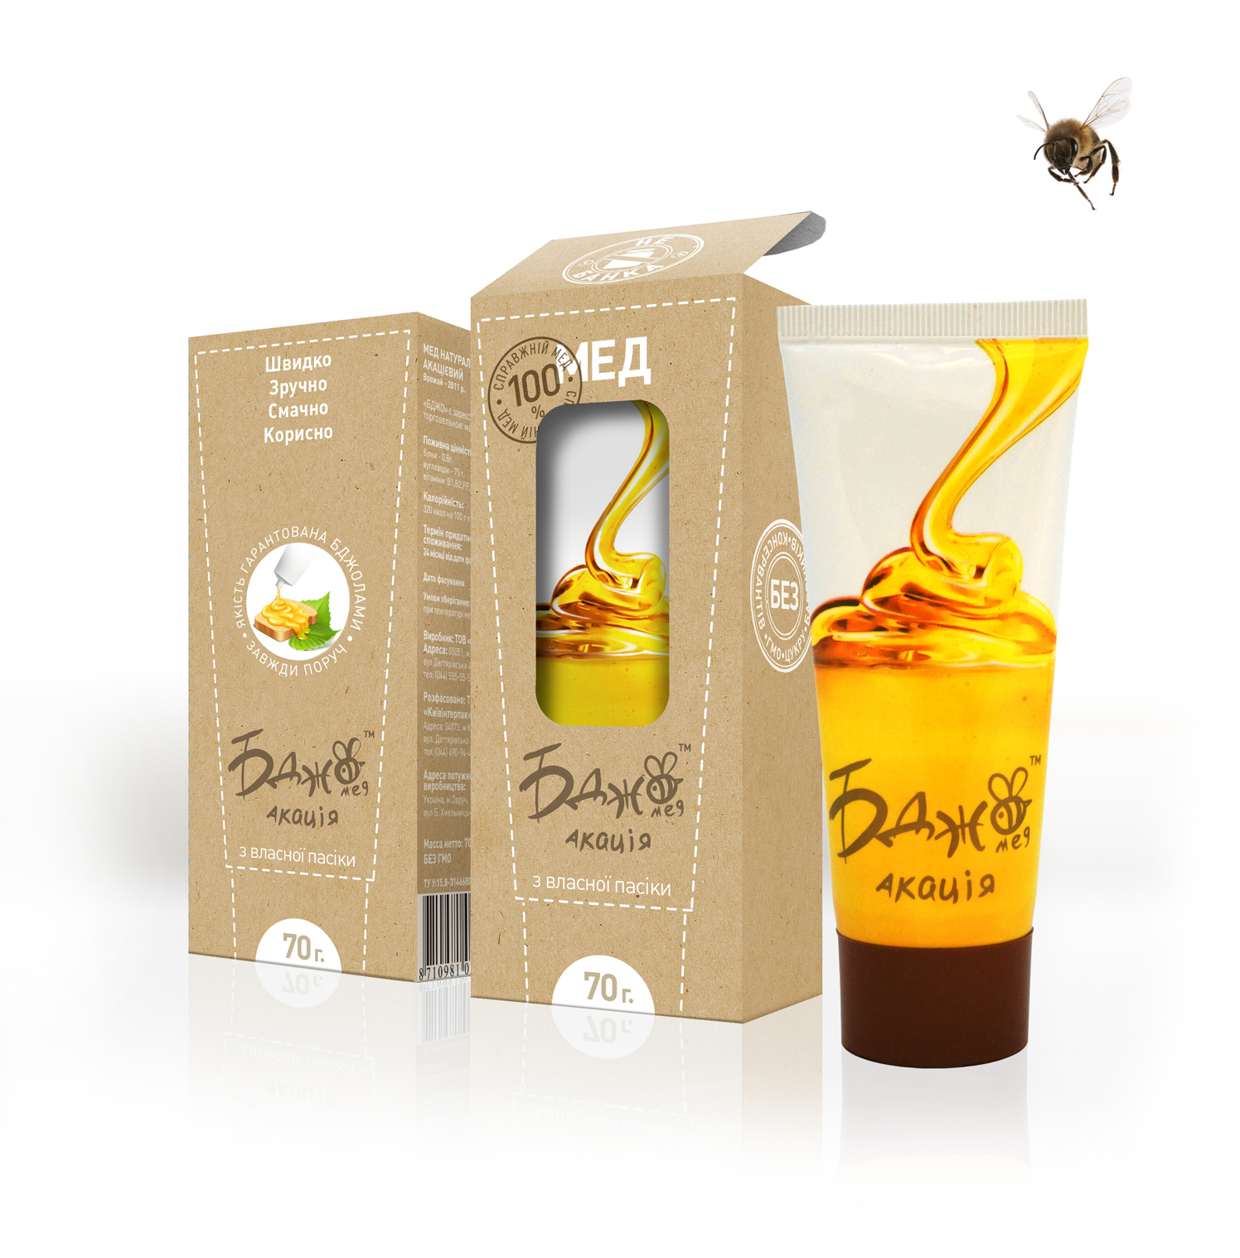 bdjo honey on packaging of the world creative package design gallery. Black Bedroom Furniture Sets. Home Design Ideas